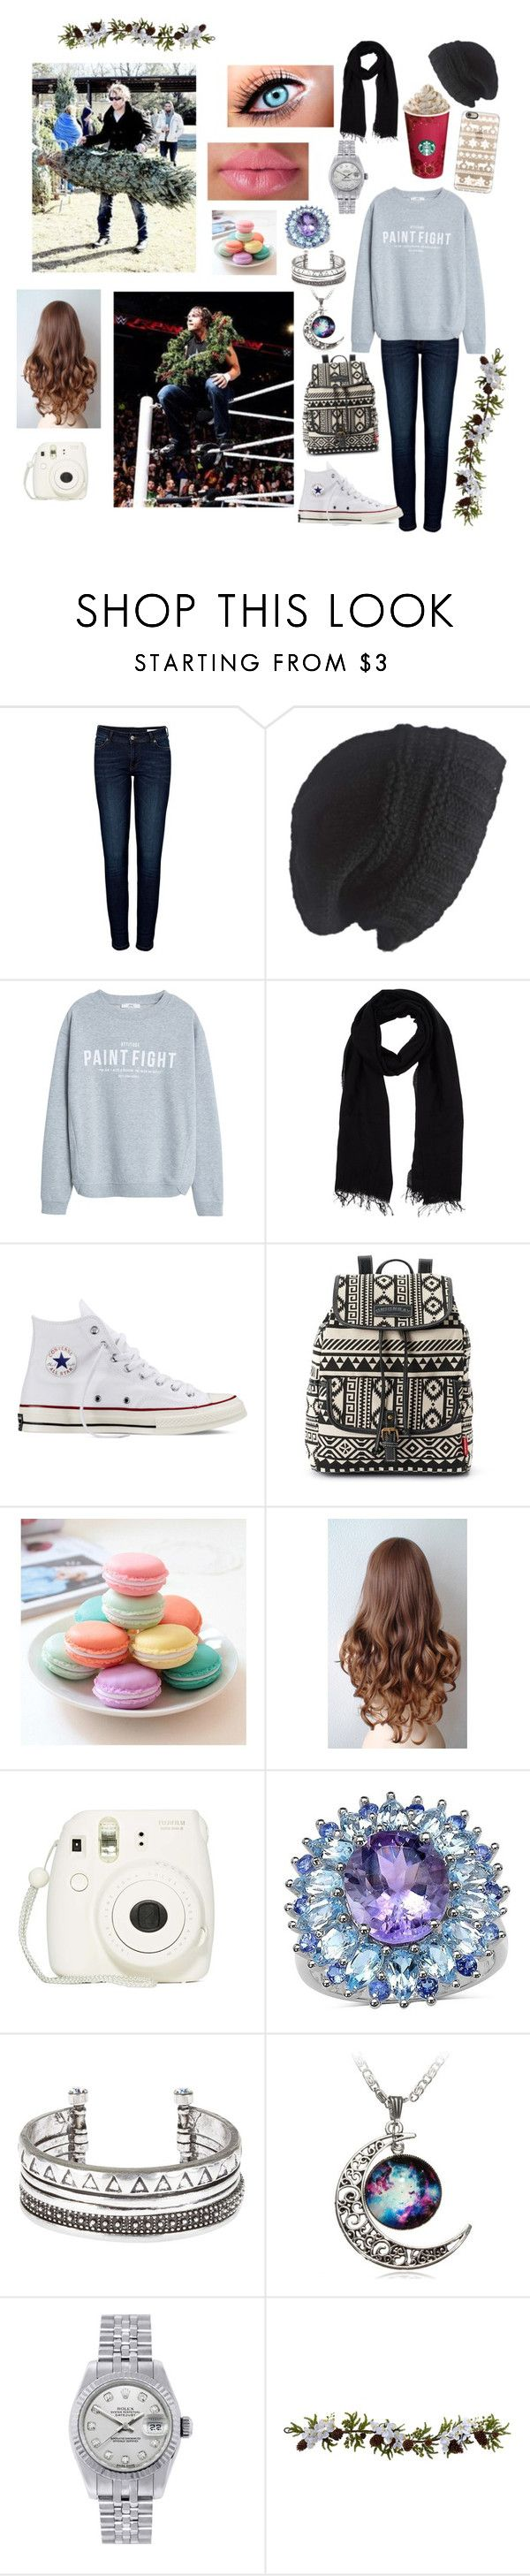 """""""Christmas with Bae😍❄️"""" by kambrose85 ❤ liked on Polyvore featuring Anine Bing, Laundromat, MANGO, Blue Les Copains, Converse, UNIONBAY, Fujifilm, Palm Beach Jewelry, Rolex and Nearly Natural"""